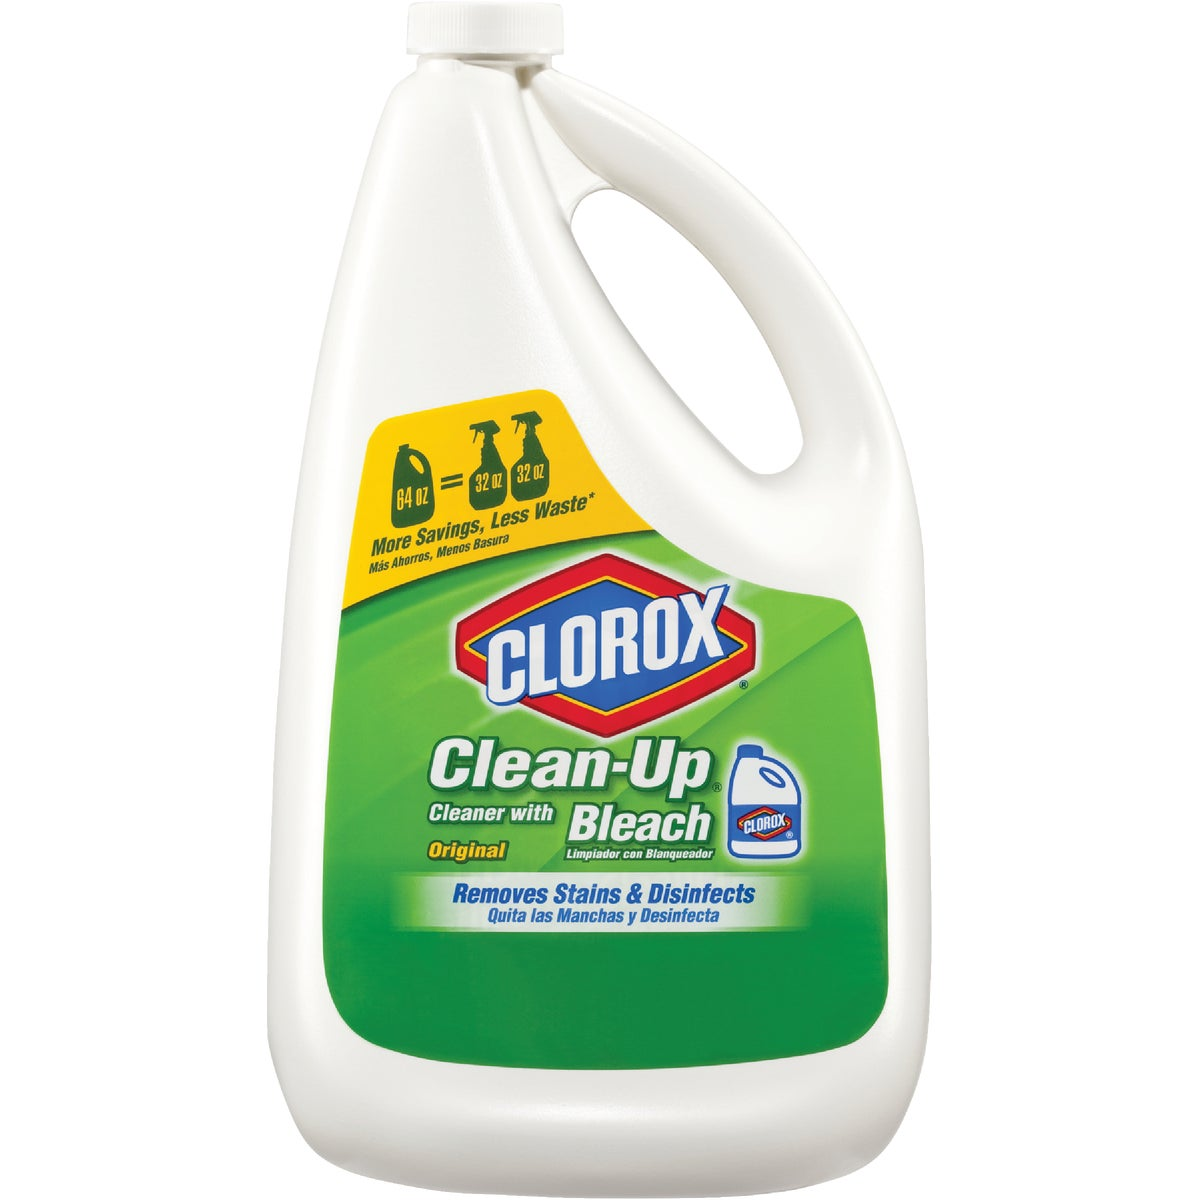 REFILL CLOROX CLEANUP - 01151 by Clorox/home Cleaning